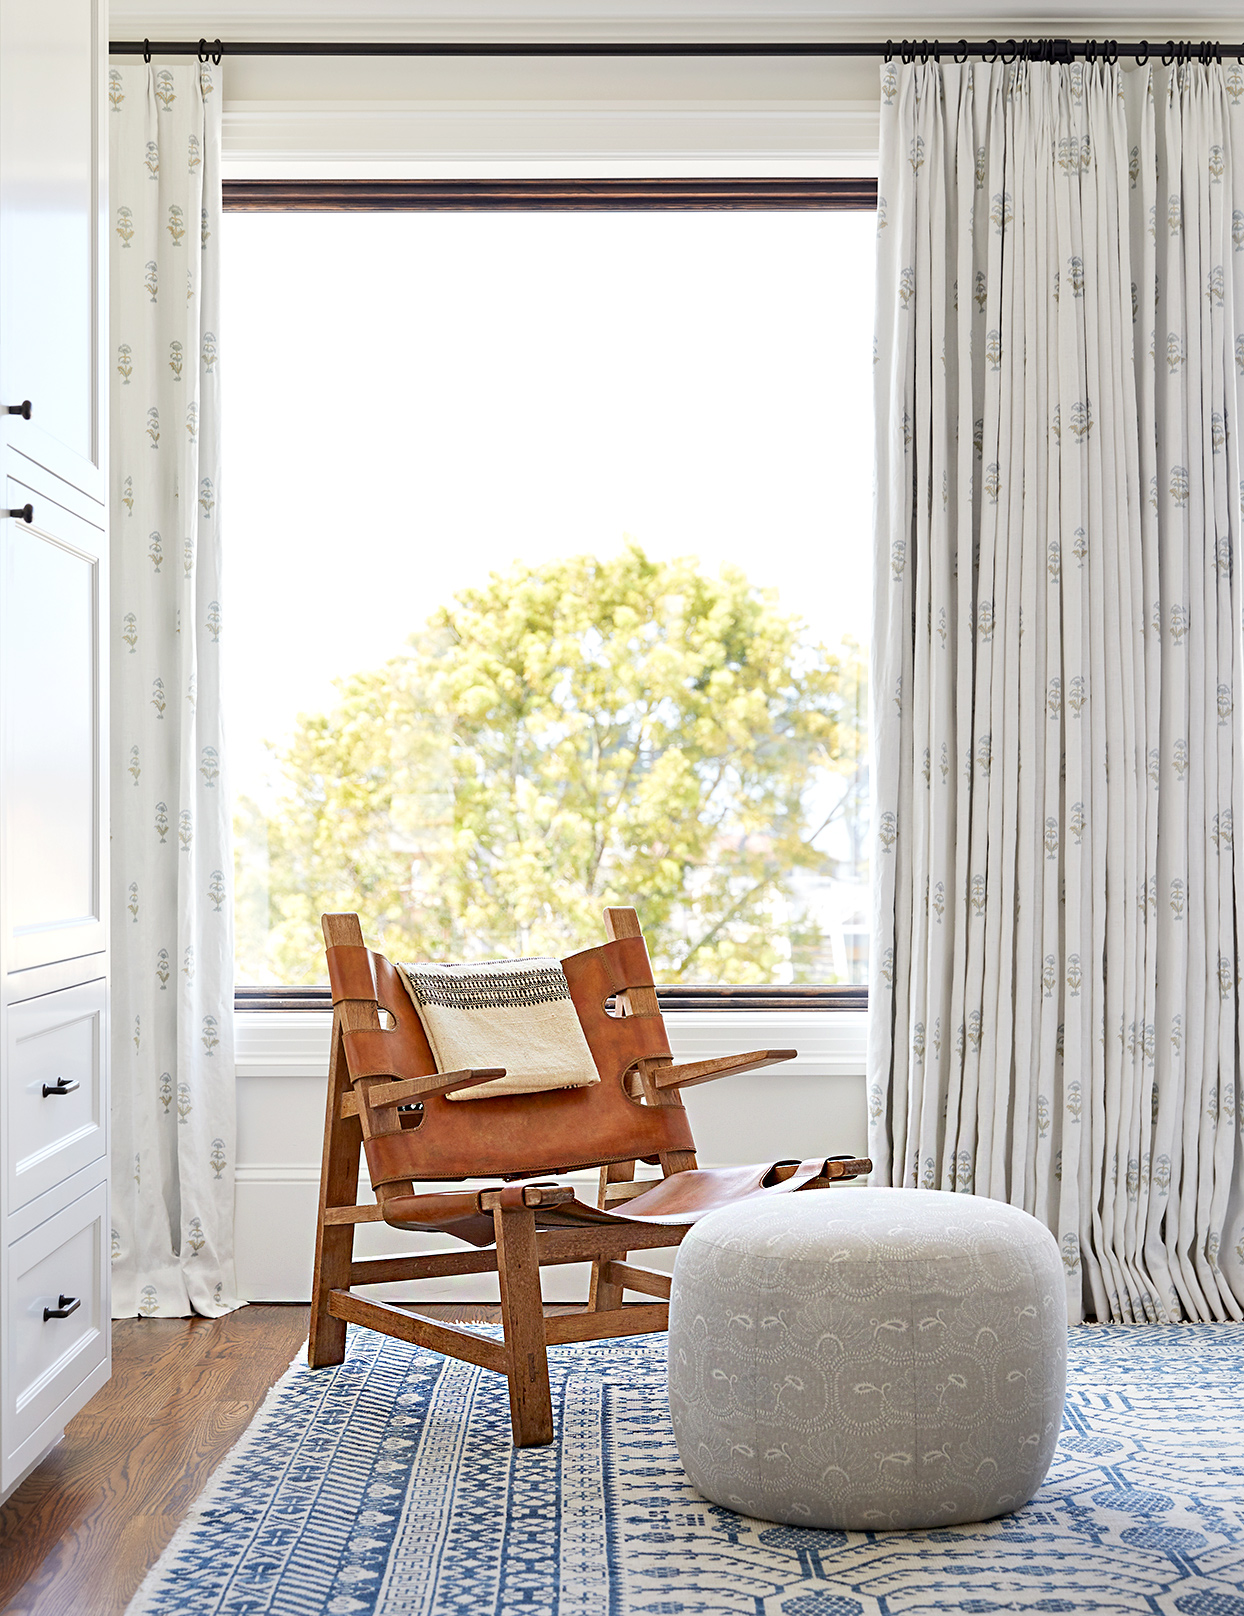 Chair on front of window with ottoman